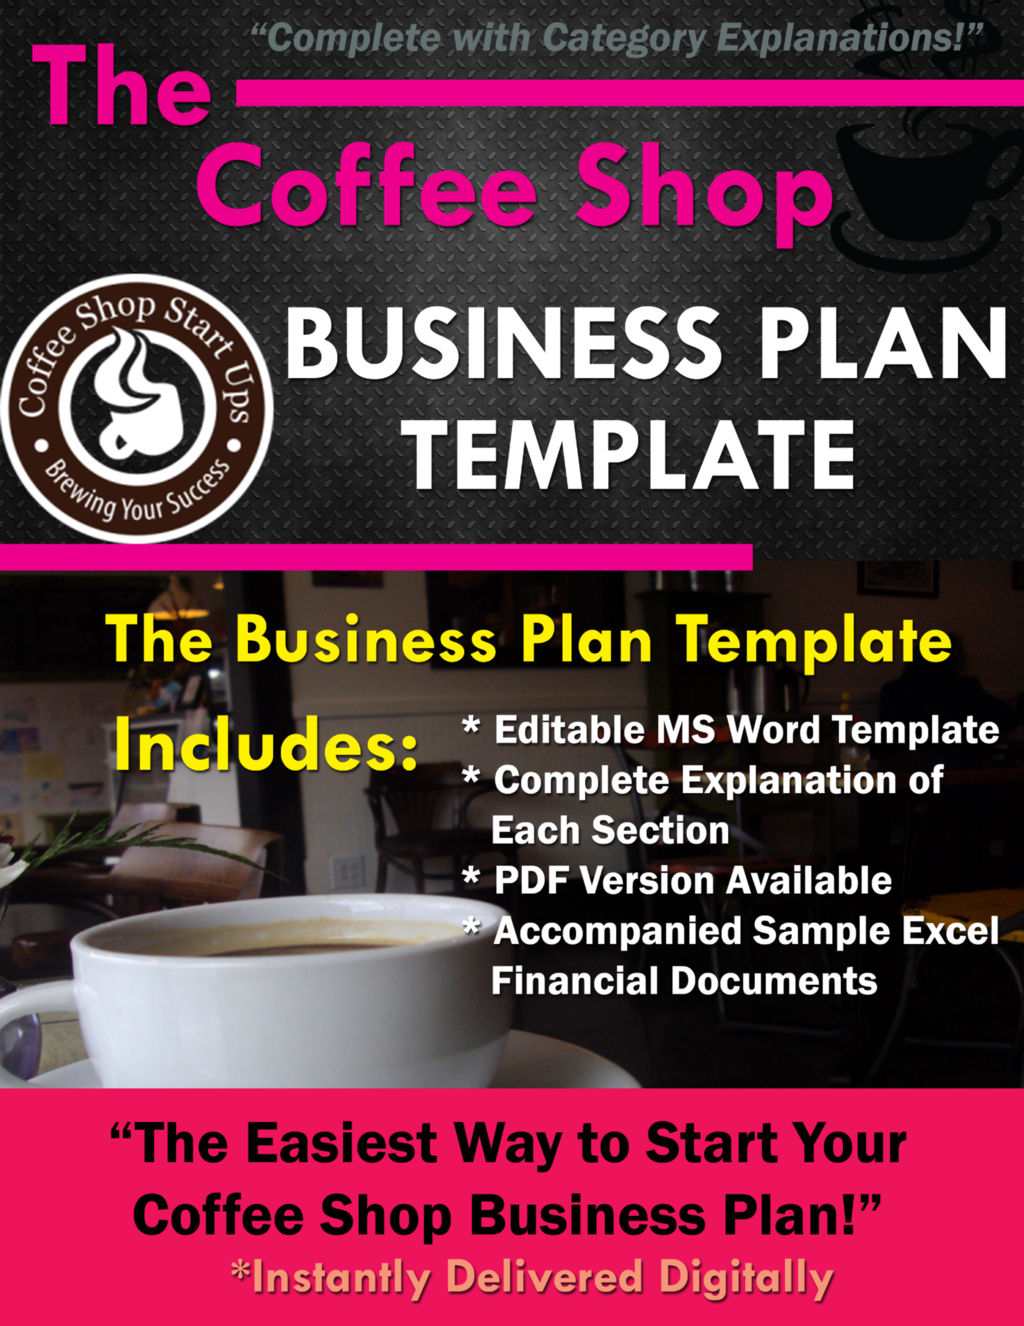 coffee shop plan essay Coffee shop business plan explains that every day, millions of people stops for an espresso-based coffee drink people who would not have dreamed of spending more than $10 for a cup of coffee a few years ago now gladly pay $50 to $250 for their cappuccino, mocha latte or vanilla ice blended drink.